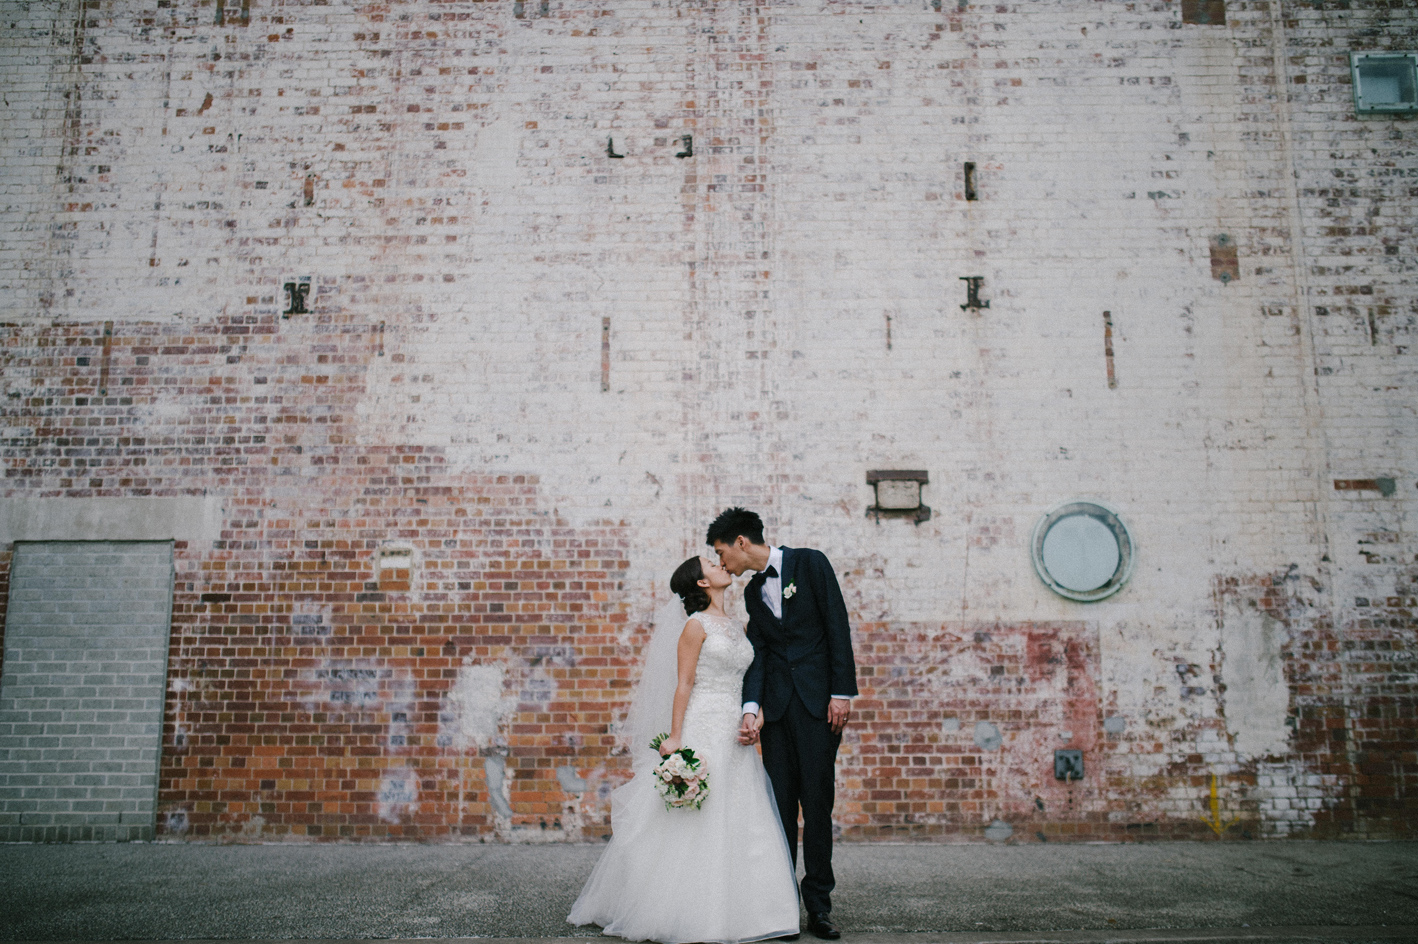 052-laurel-ivan-brisbane-wedding_sophie-baker-photography